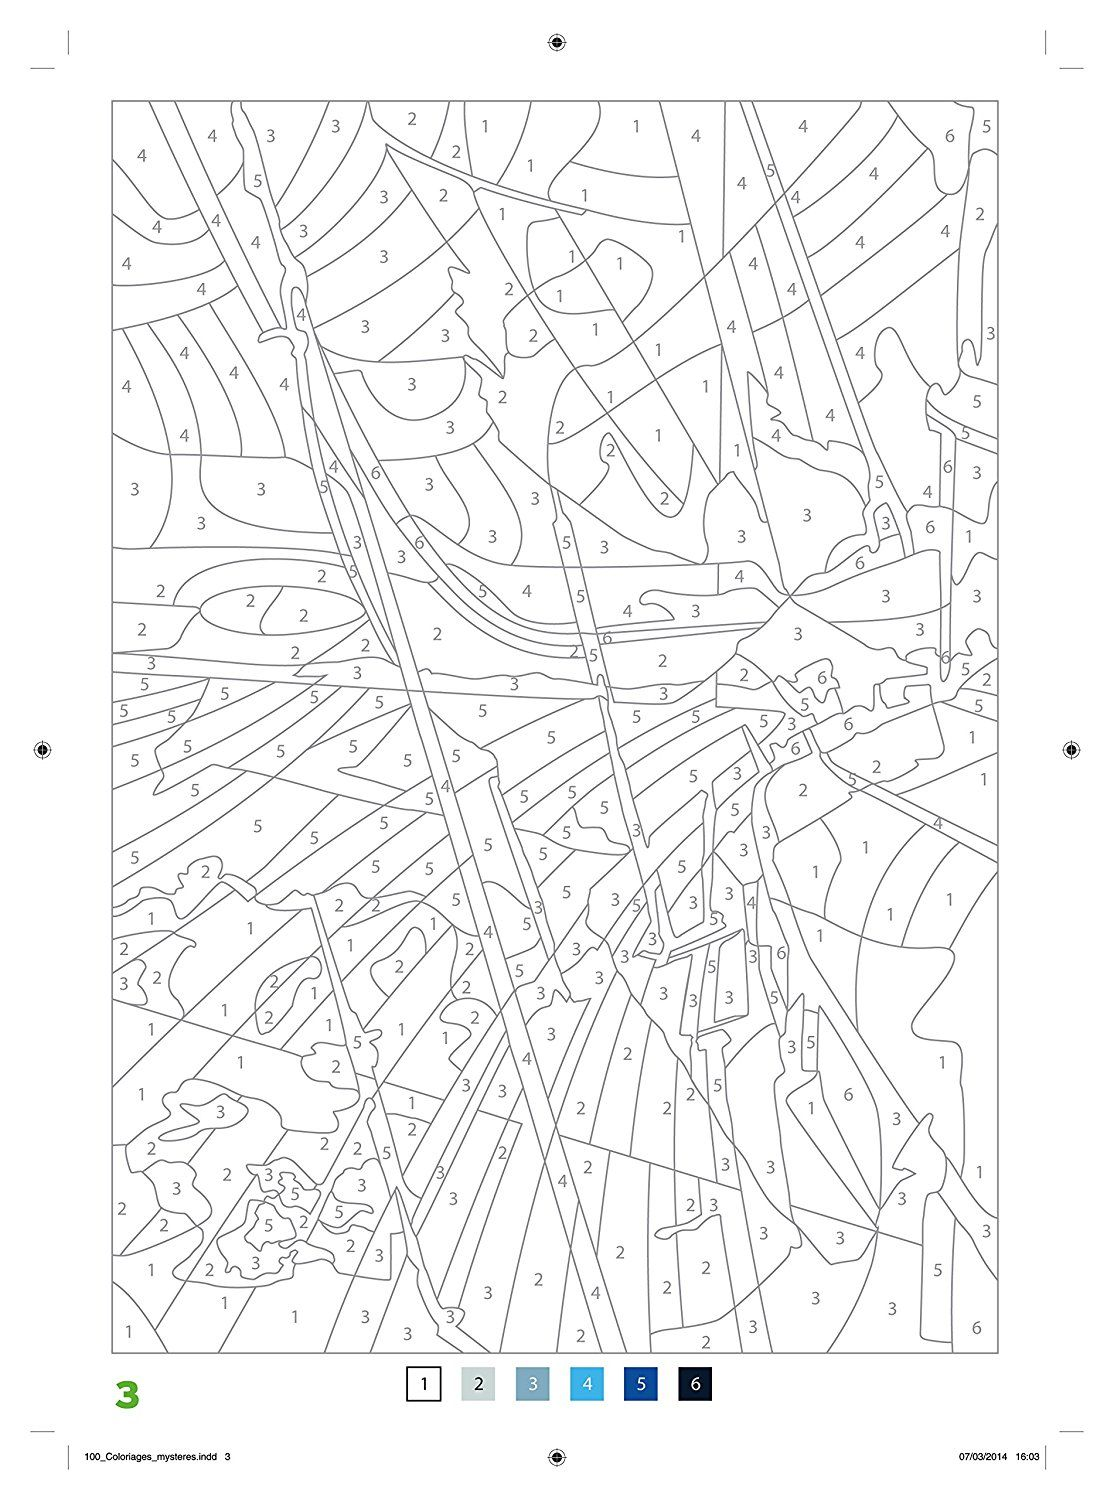 100 Coloriages Mysteres Art Therapie Color By Number Coloriage